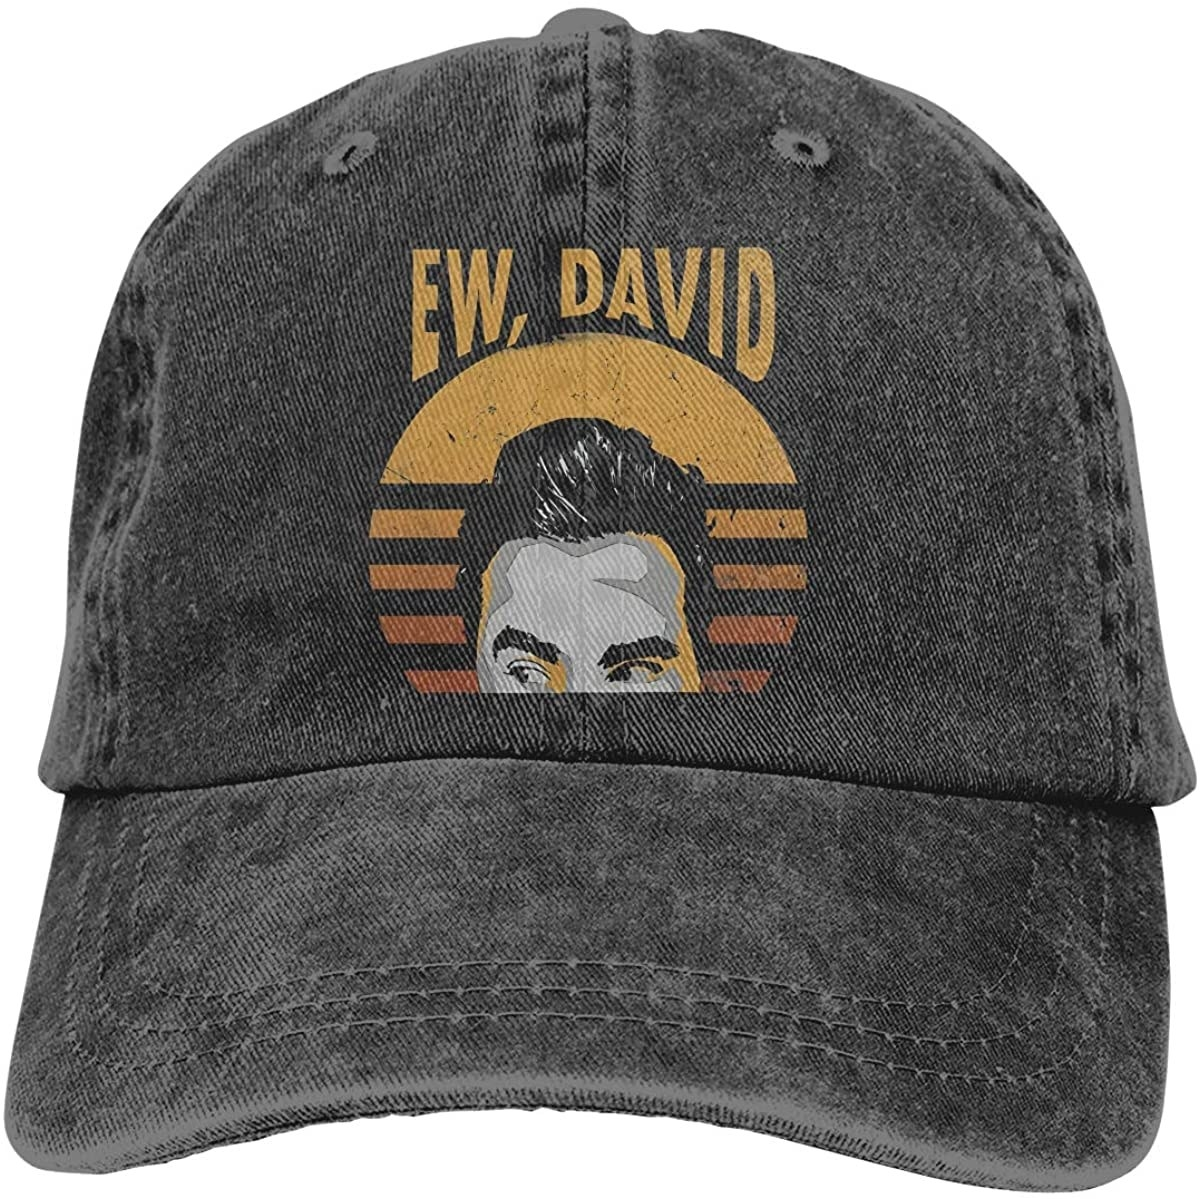 "A faded black hat with a black, white, and orange design showing David giving side eye and the text ""Ew, David"""